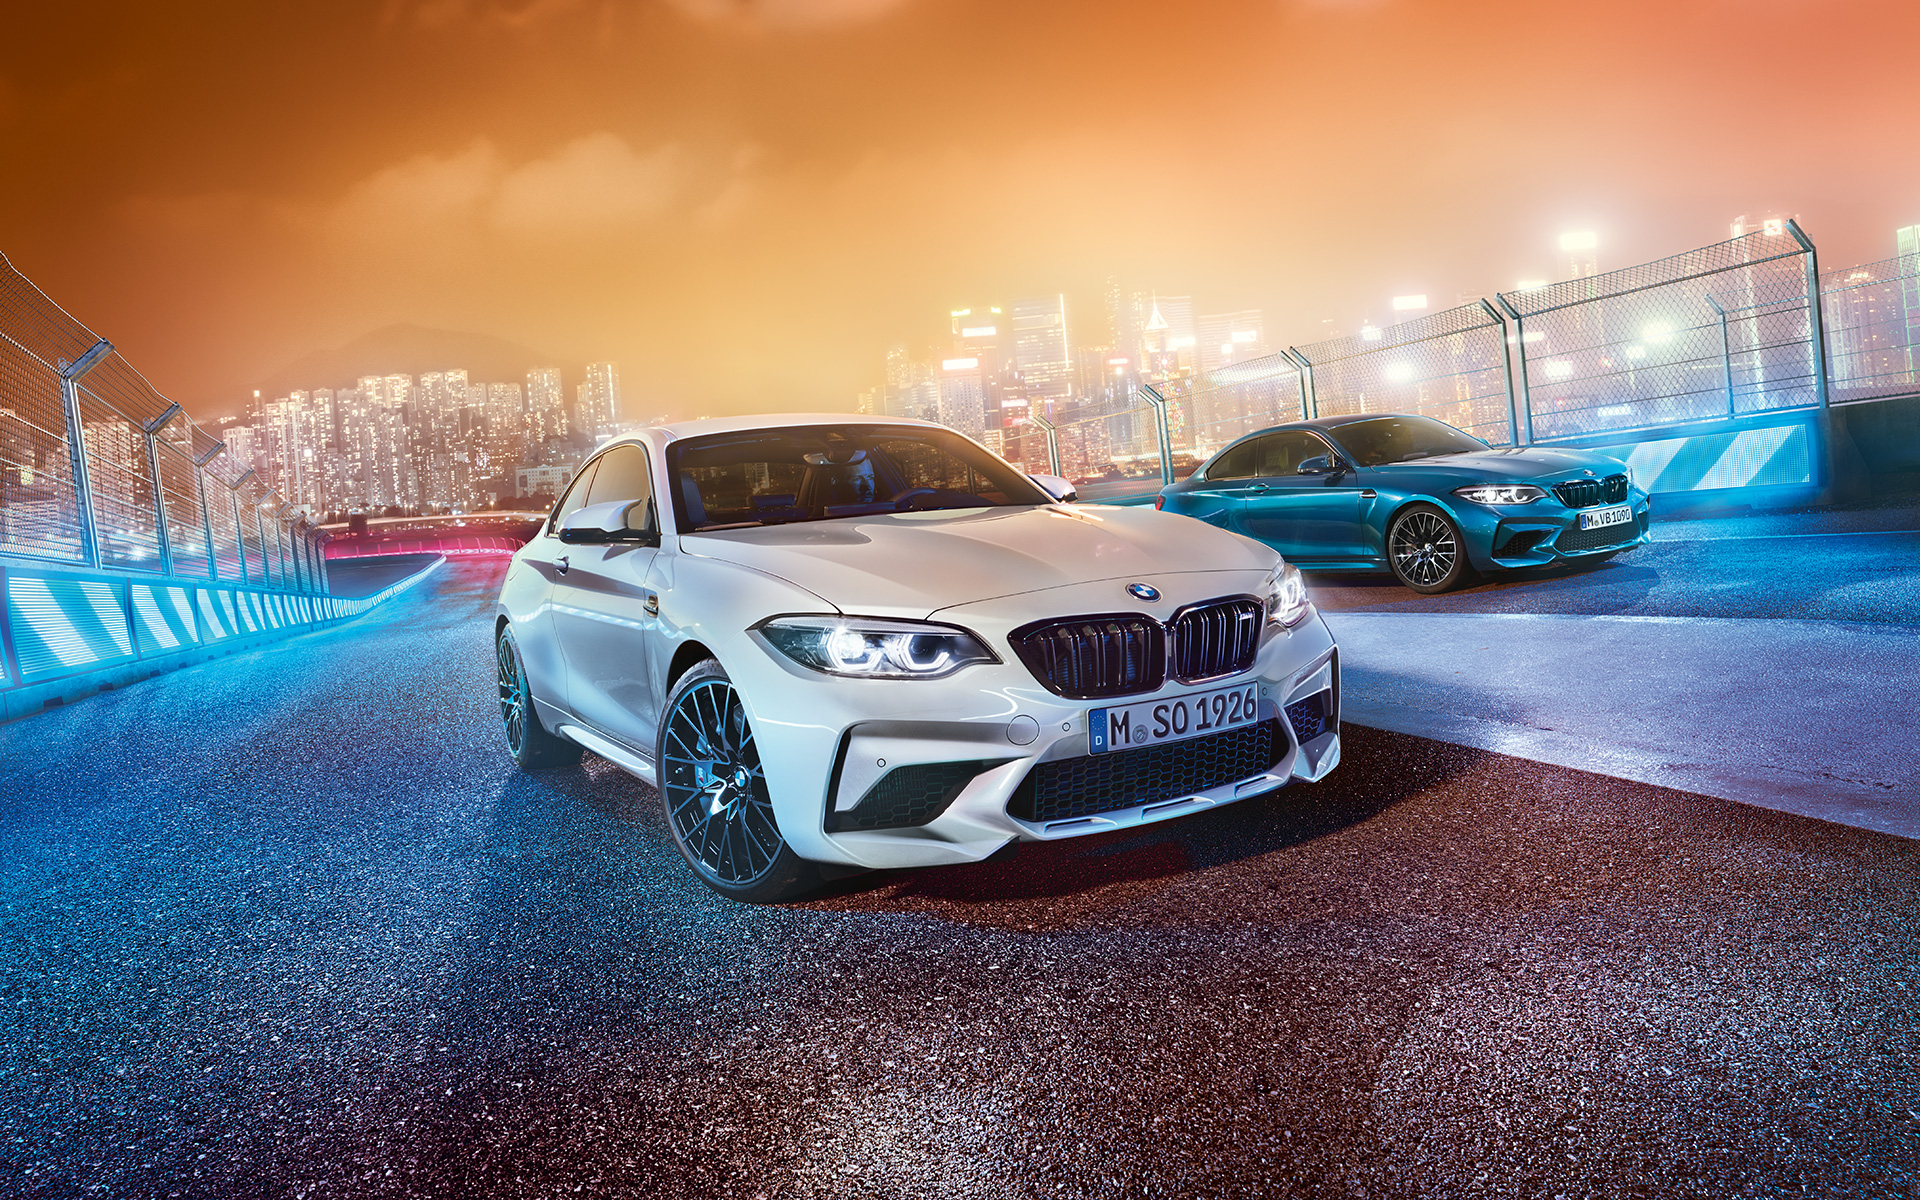 New BMW M2 Coupe in metallic and bright blue: city lights